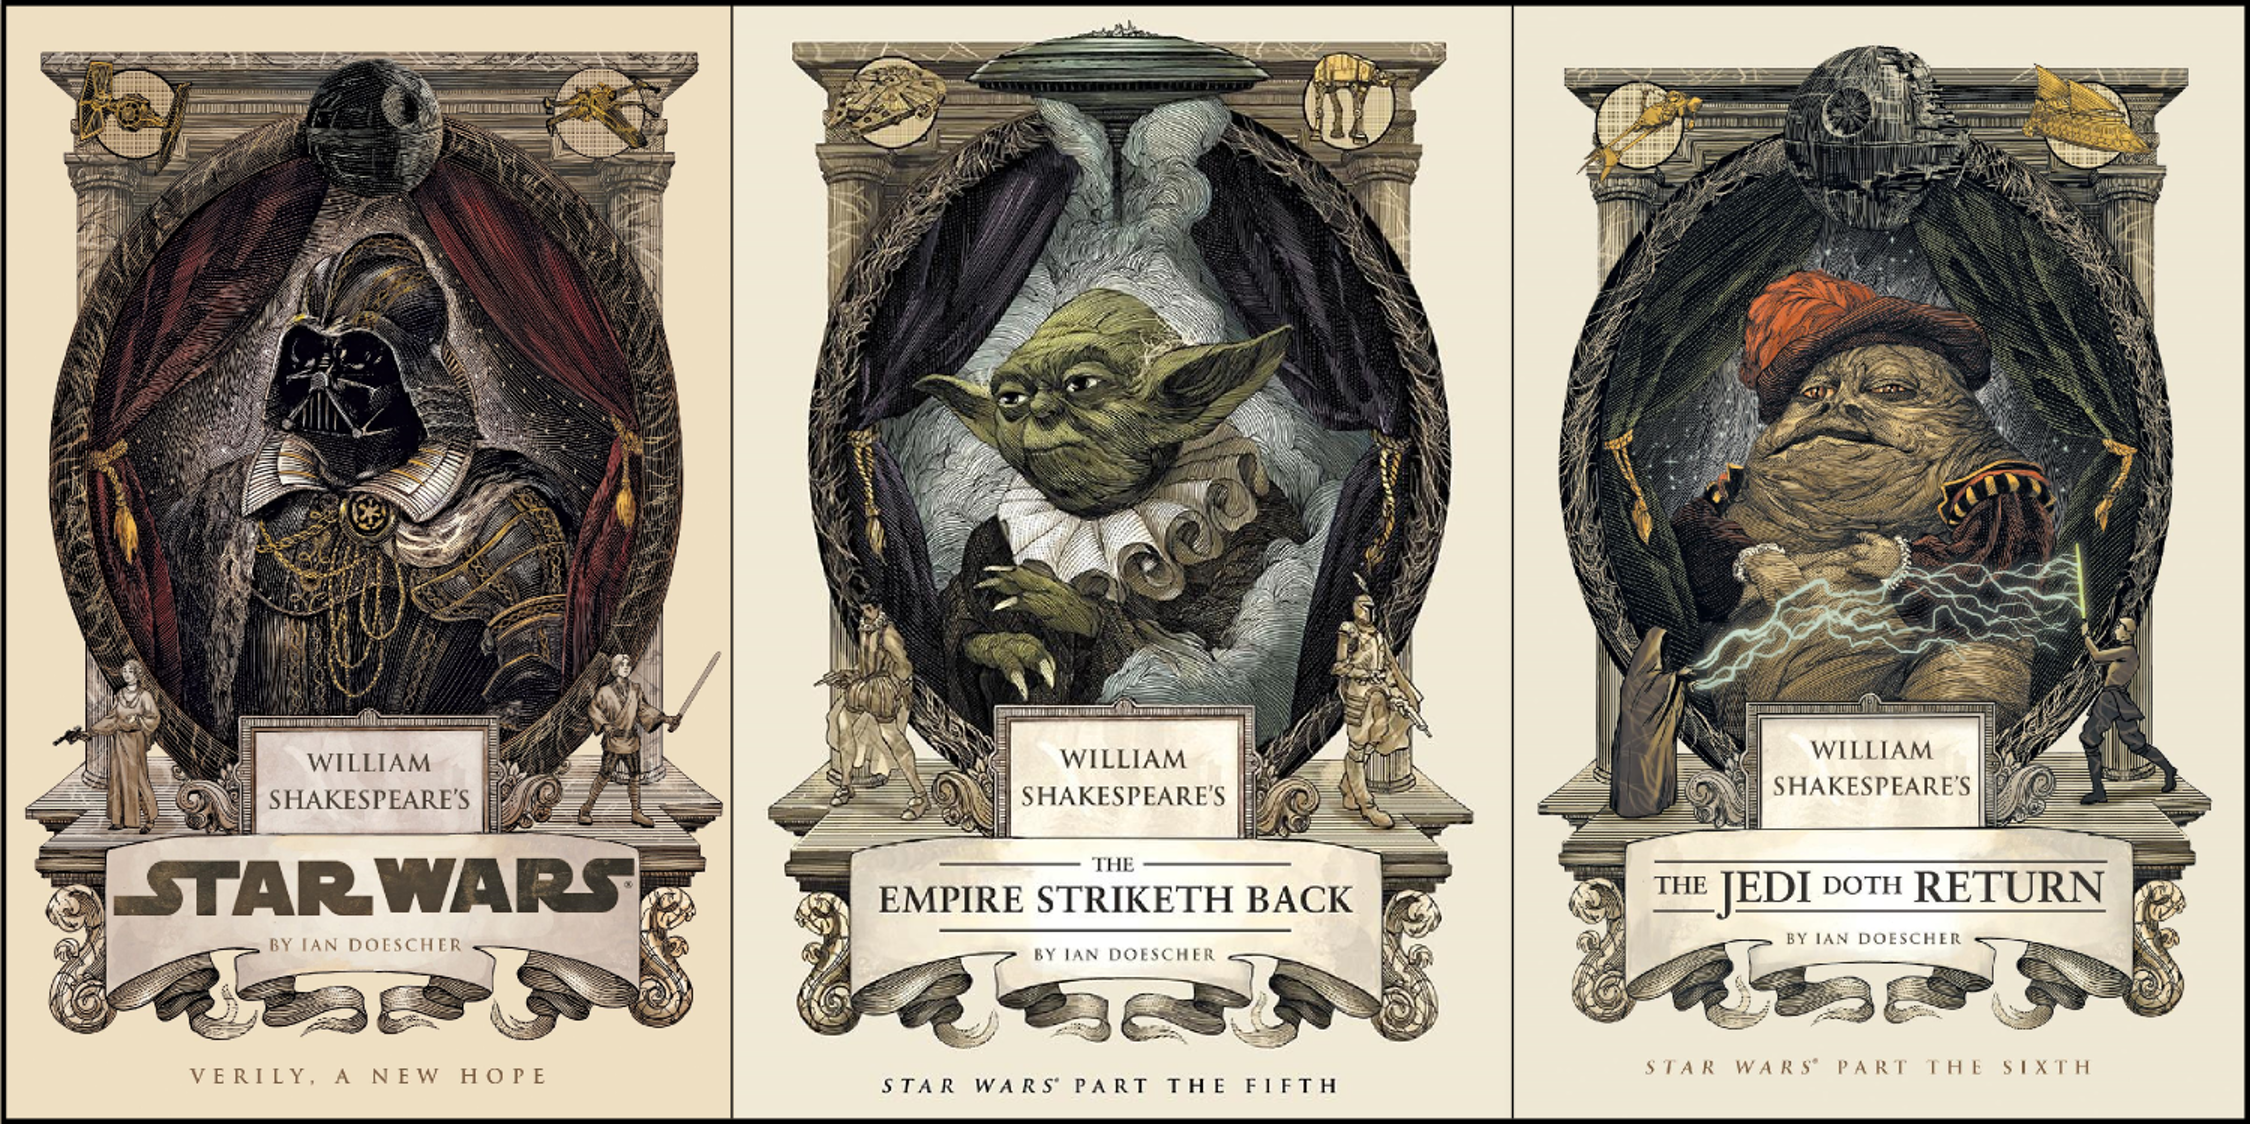 Ian Doescher's 'Star Wars' novels